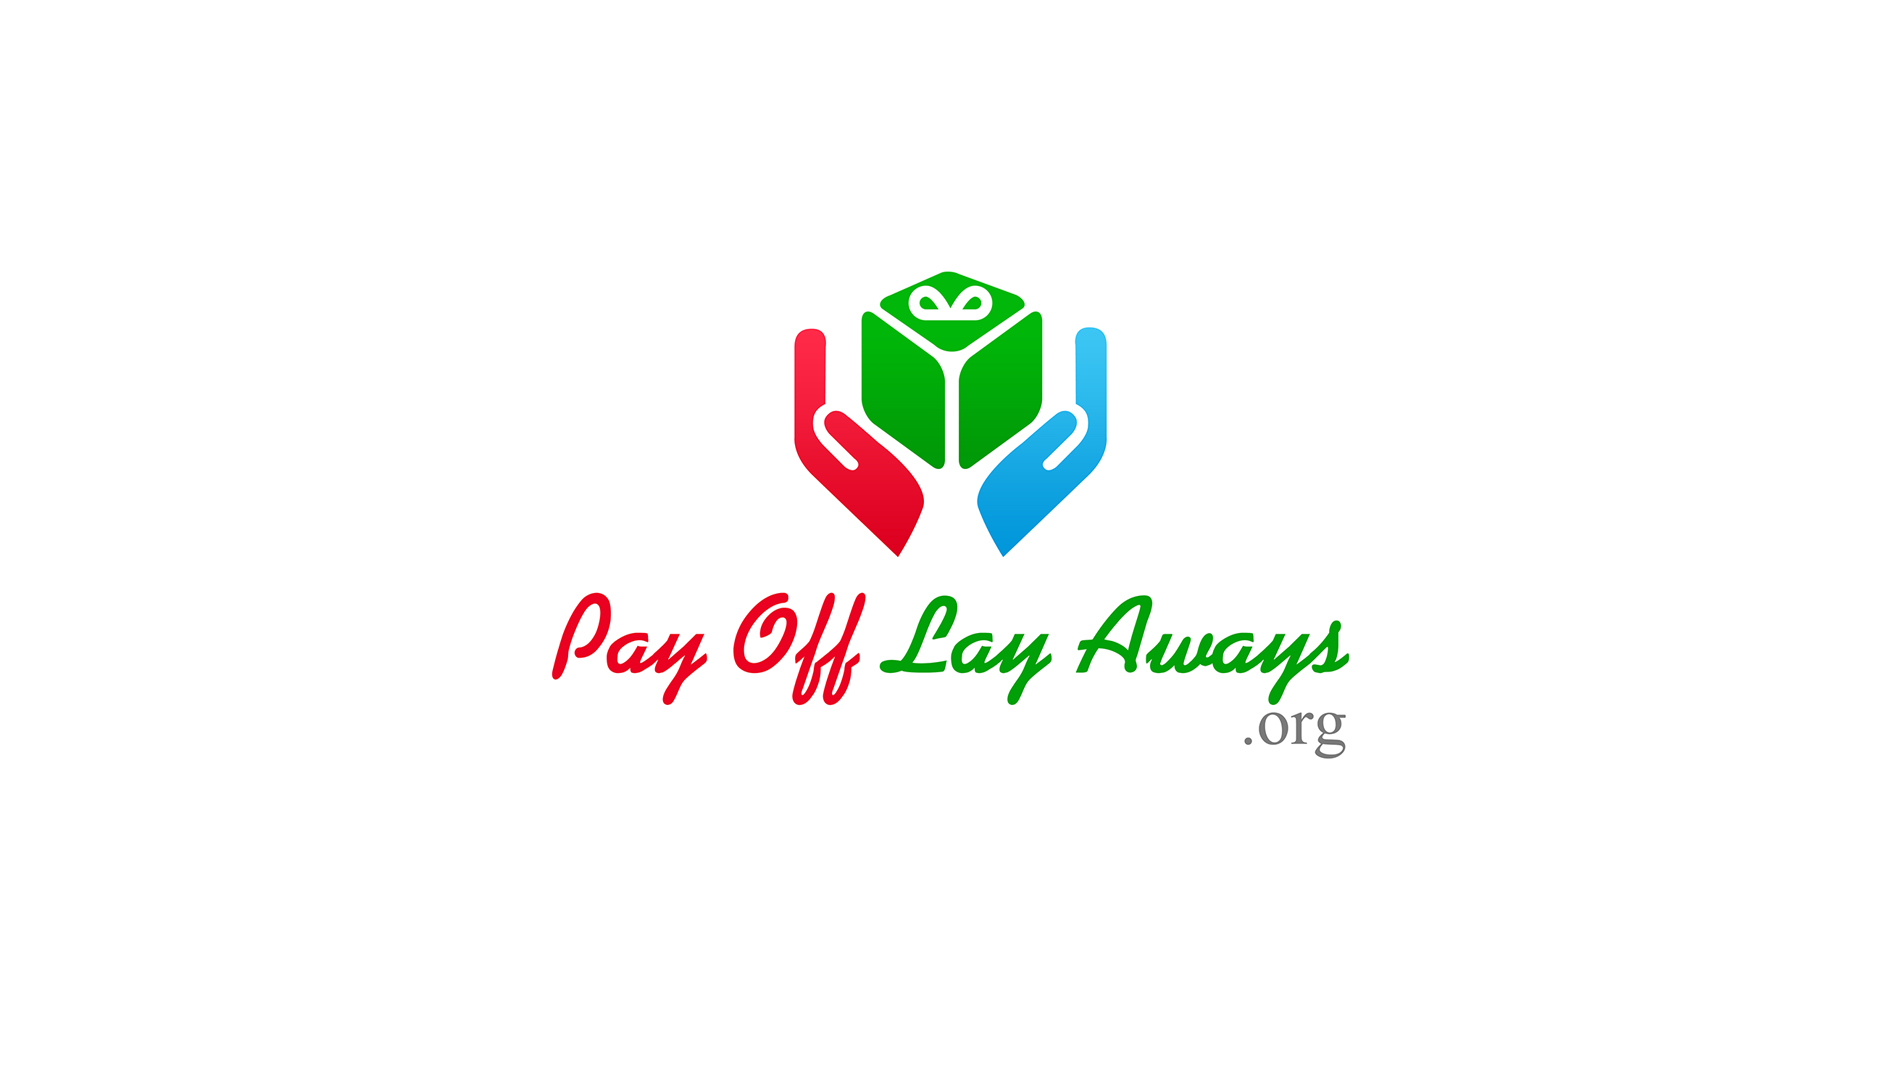 Annual Payoff Layaways